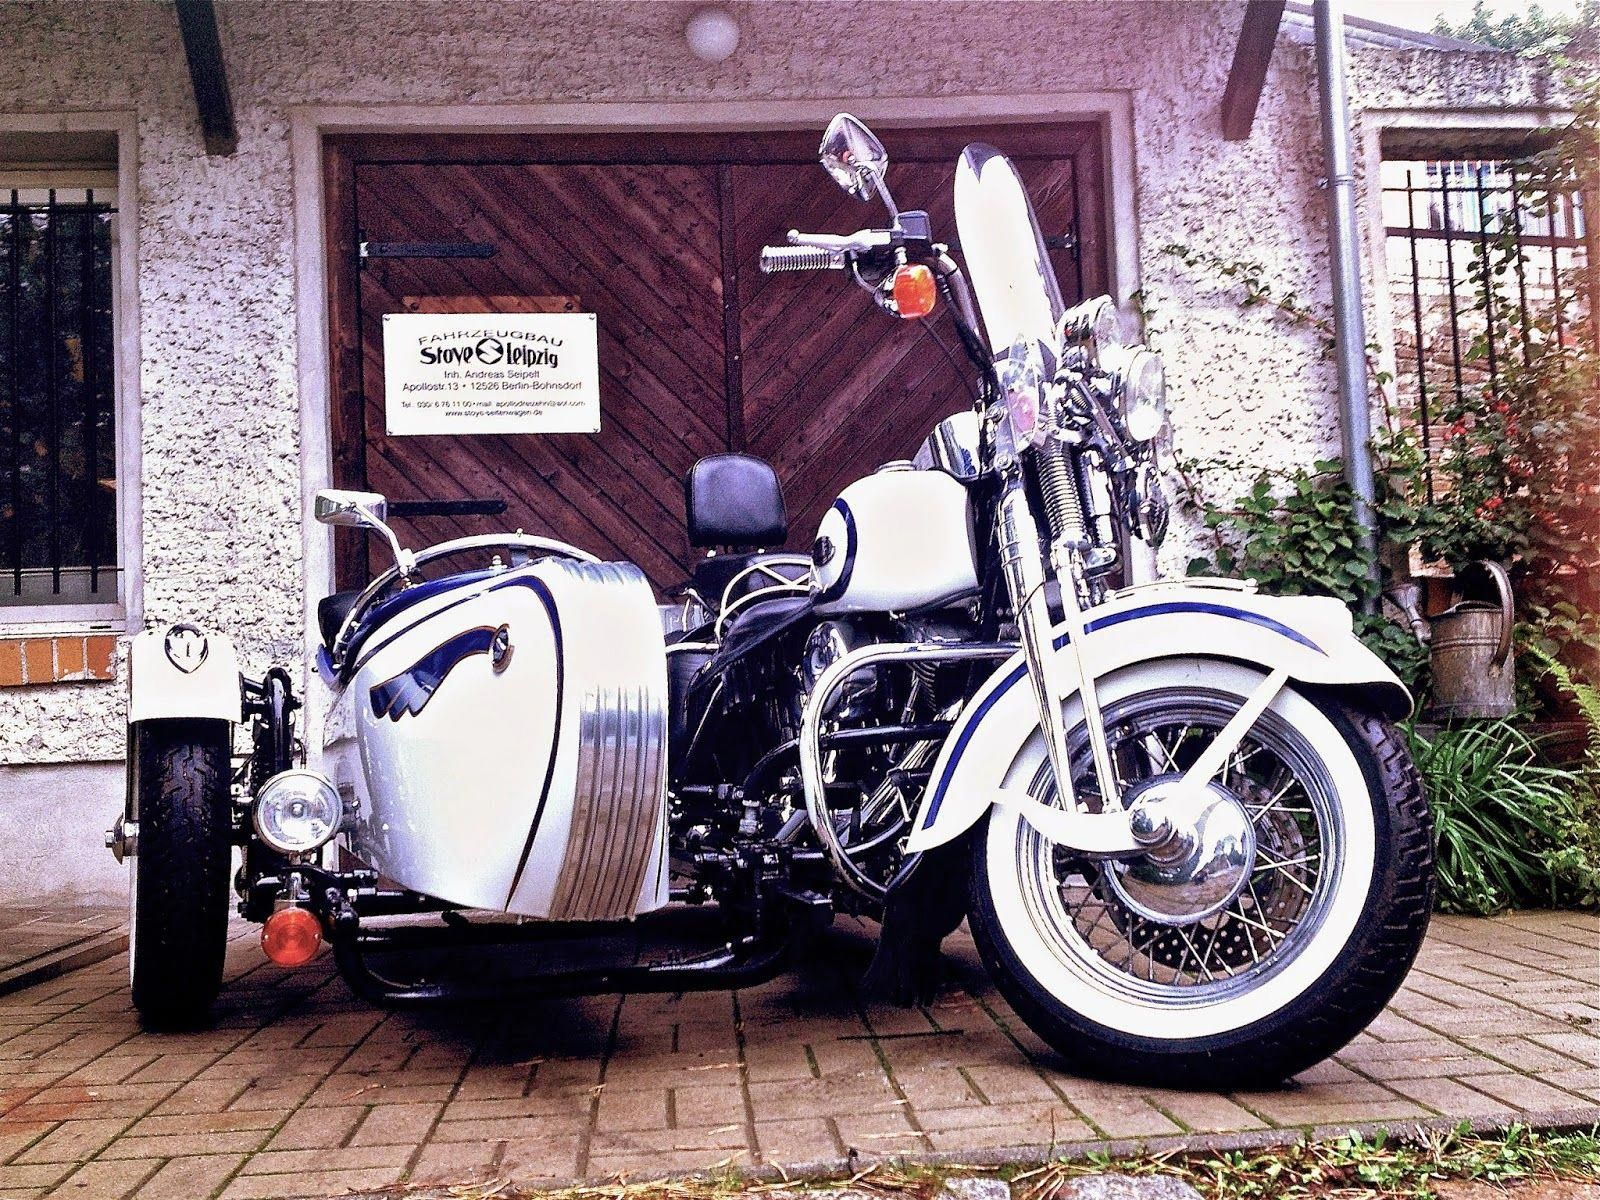 harley davidson dyna air suspension Harleydavidsondyna